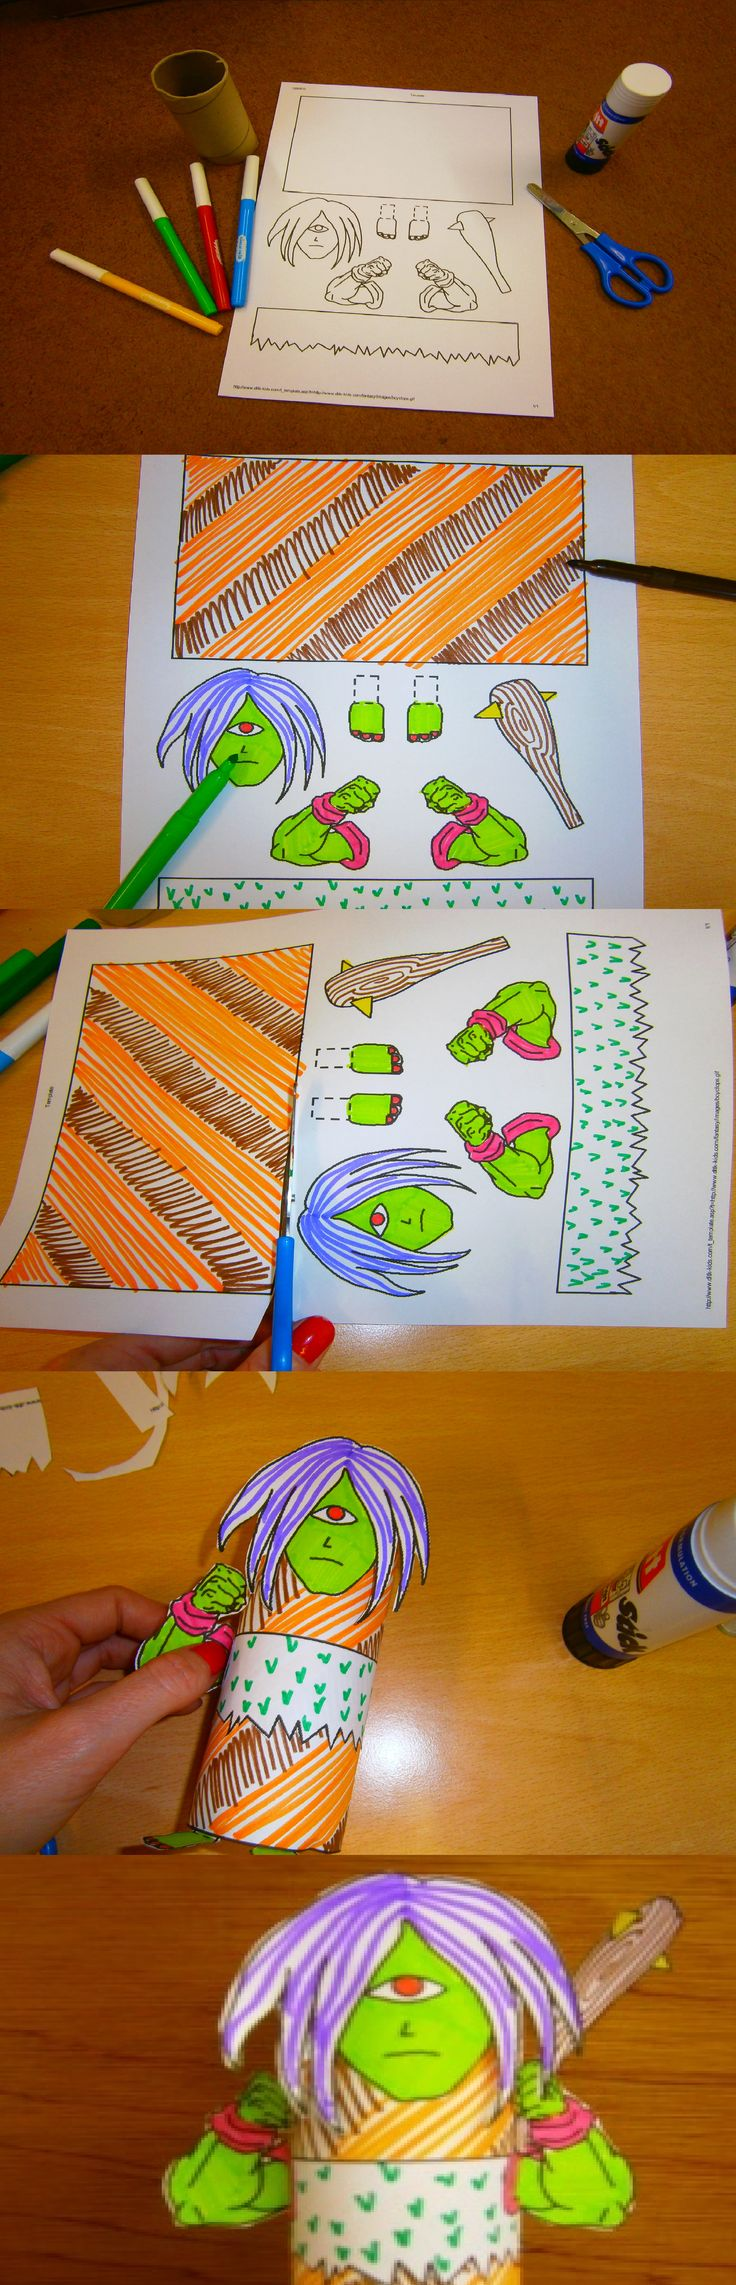 17 best images about ure family arts crafts and for Family arts and crafts